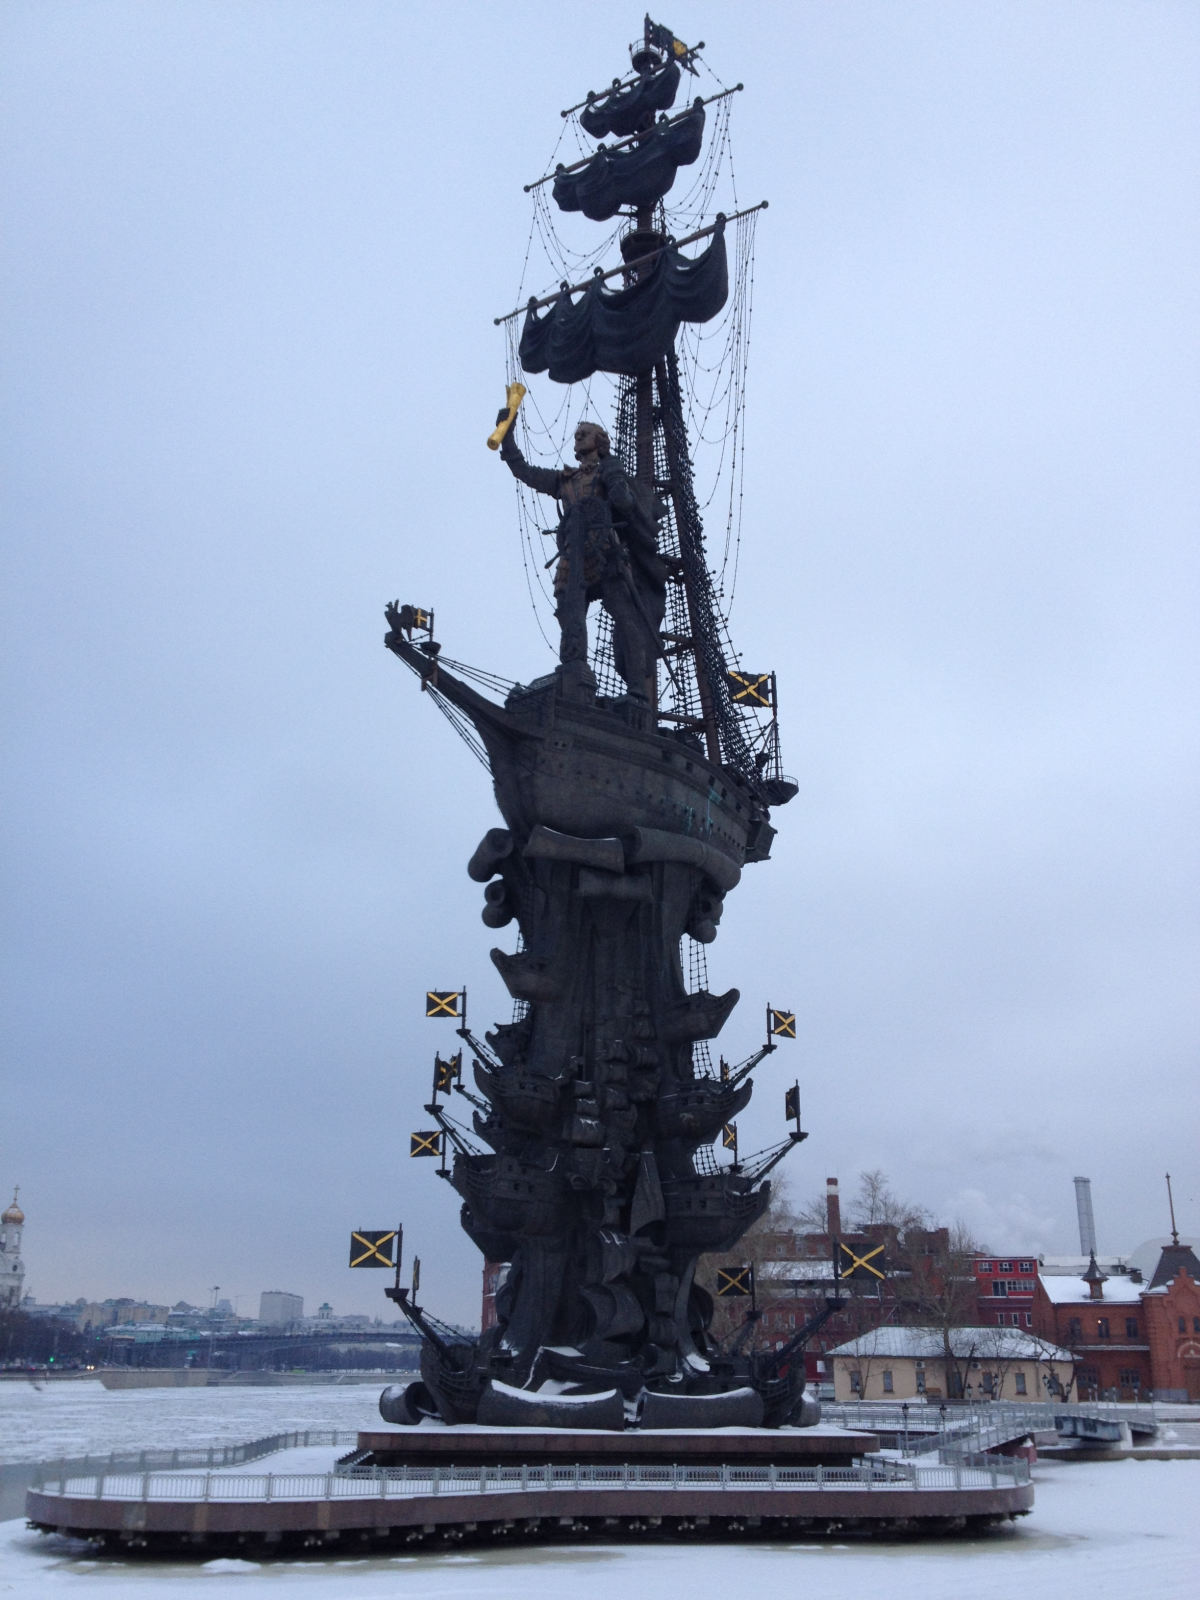 Peter the Great, not Christopher Columbus